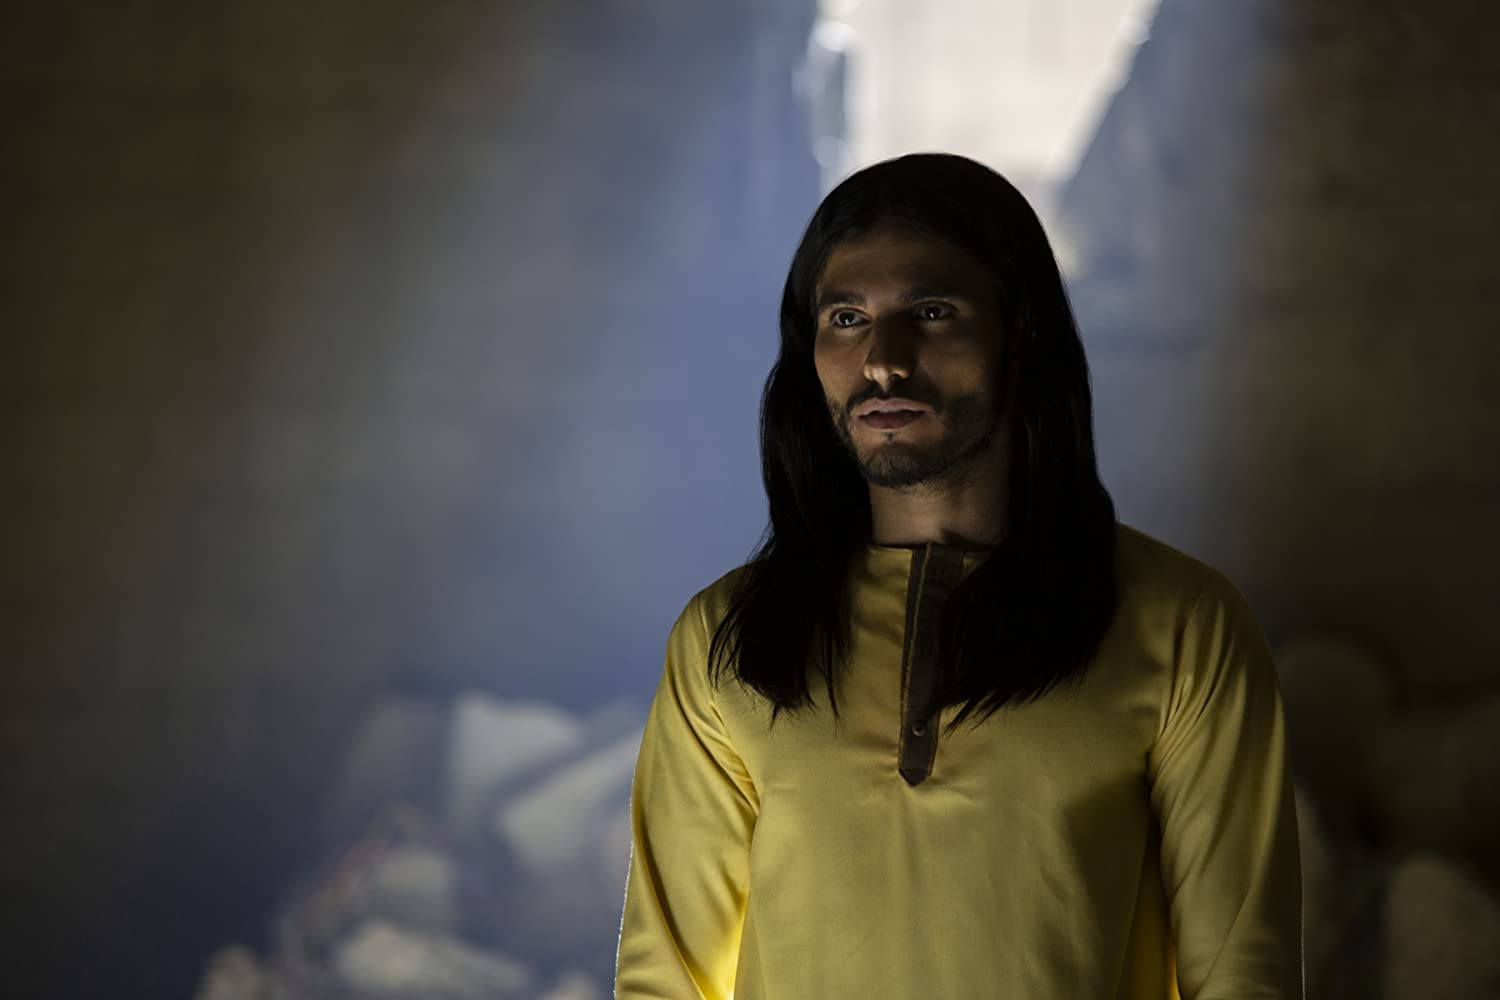 Mehdi Dehbi in Messiah (2020)